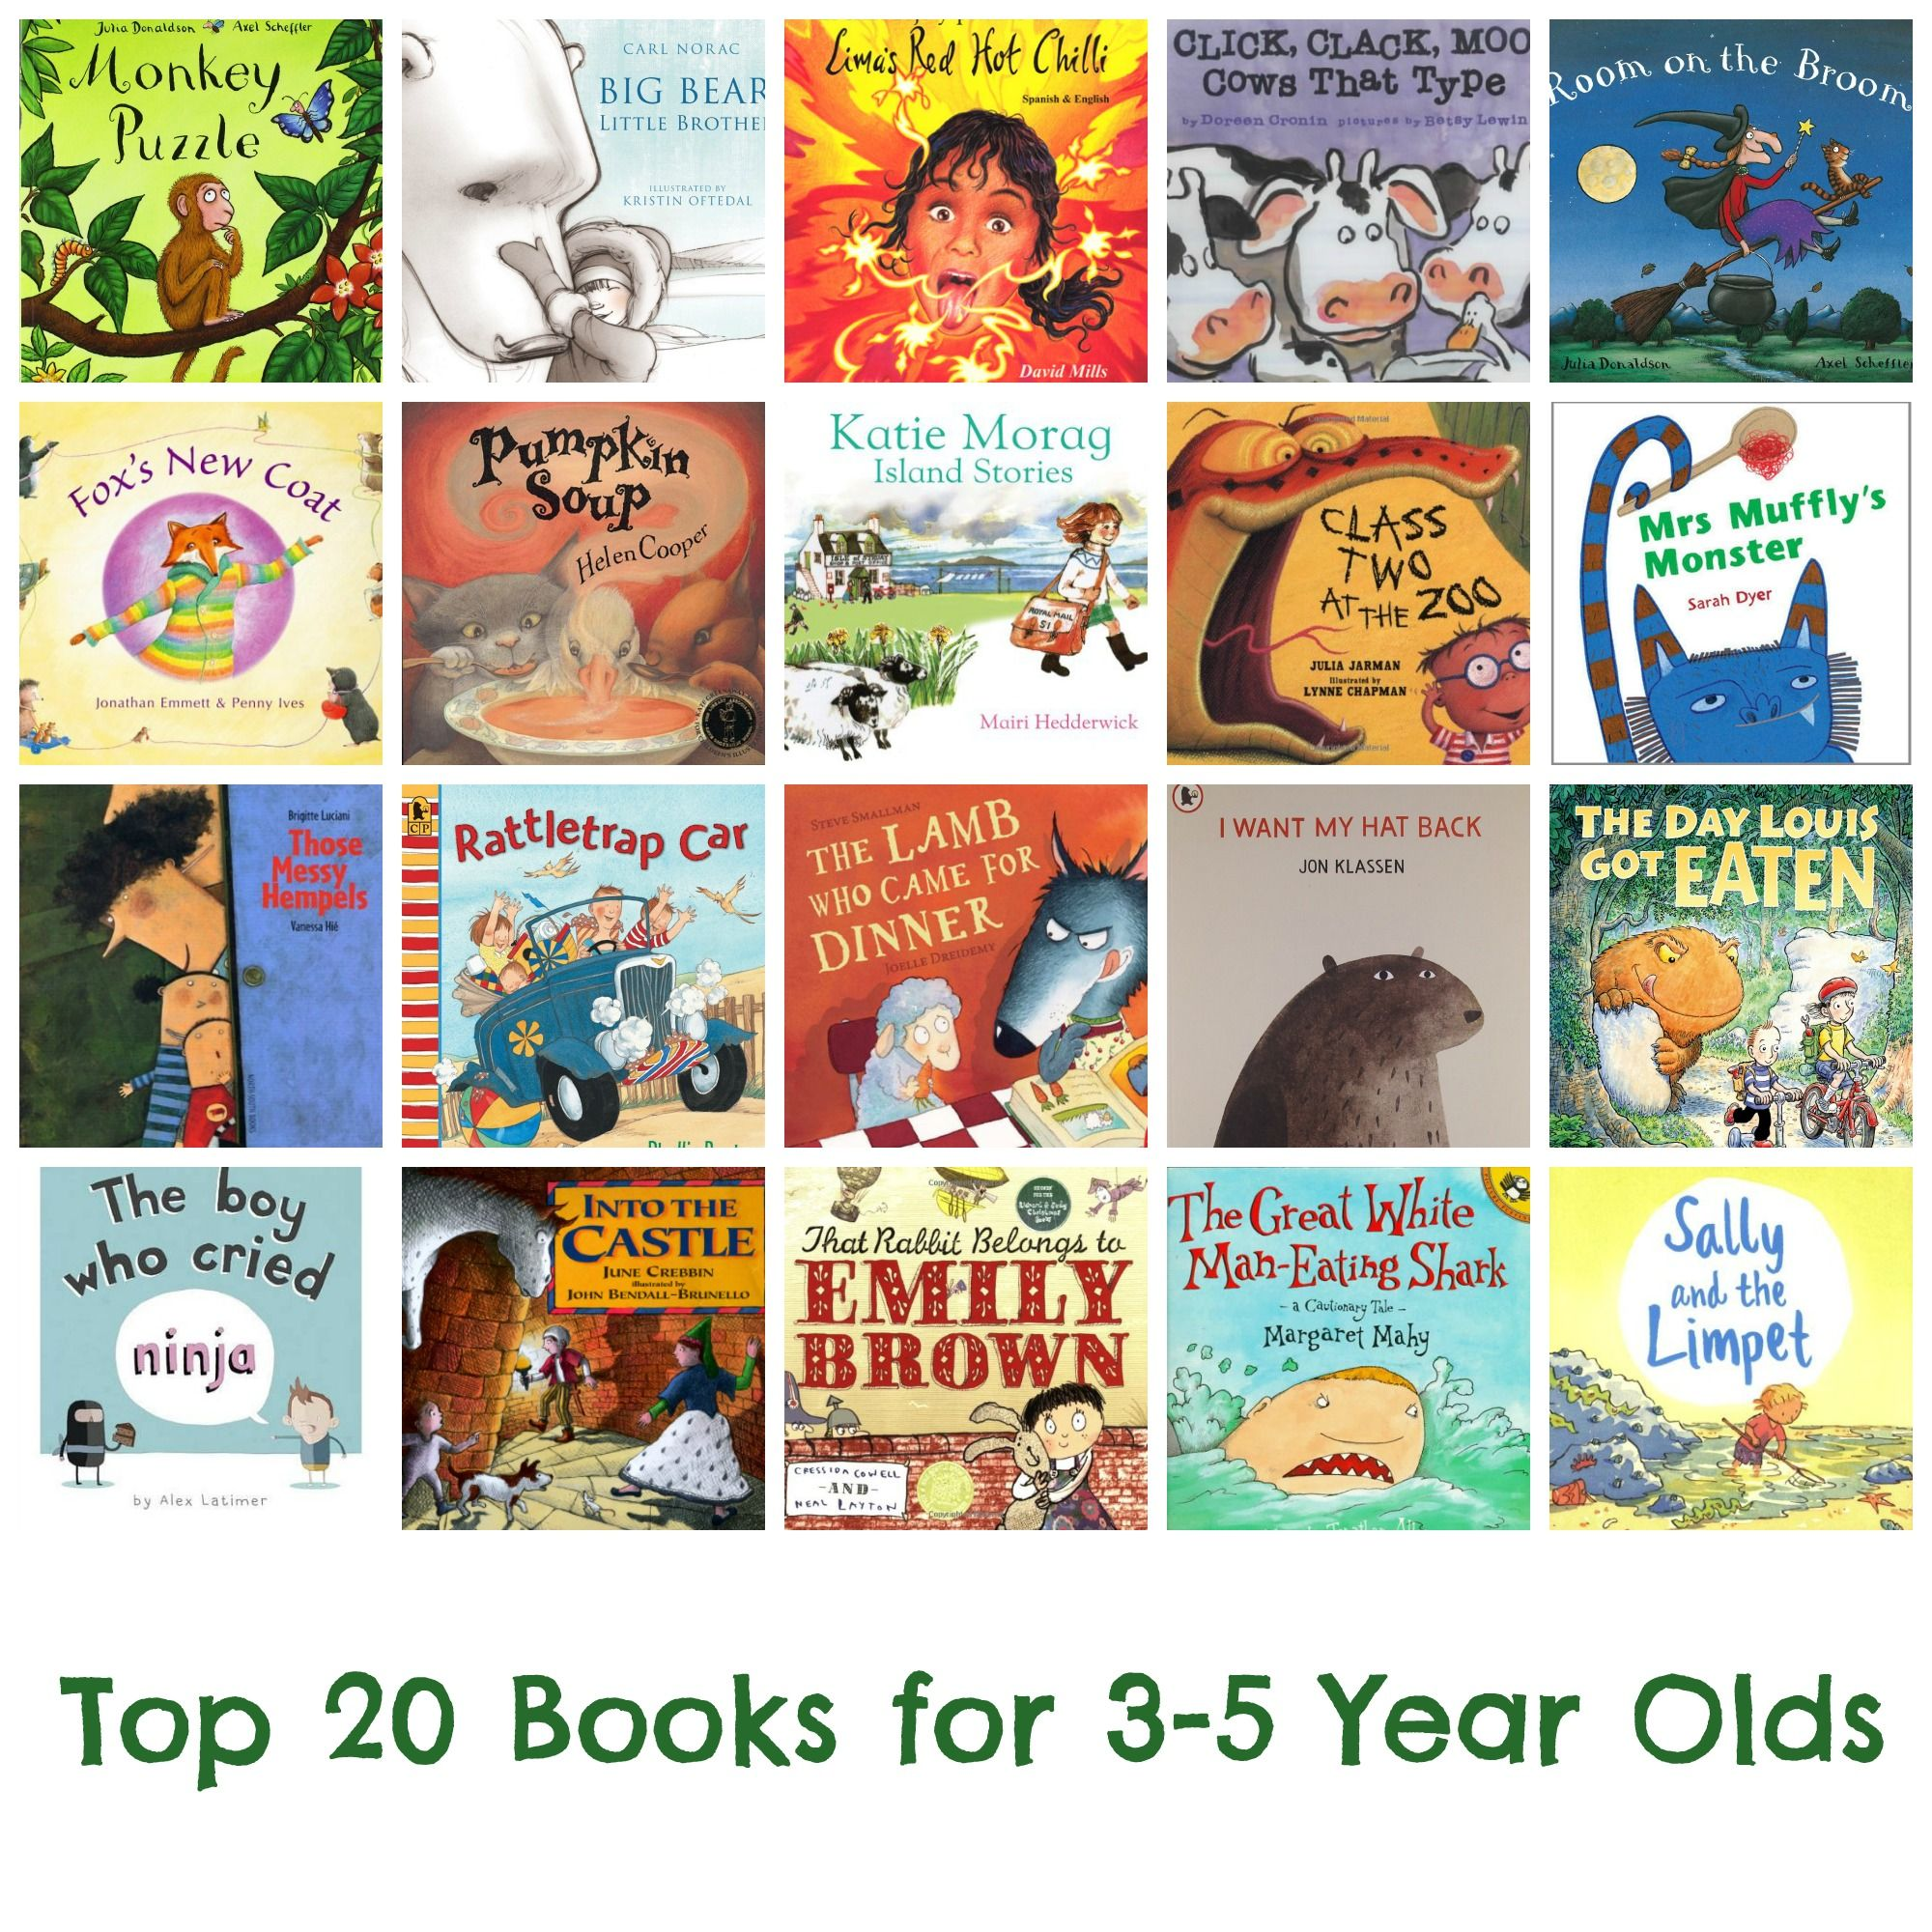 top books for year olds bedtimereading preschool nursery top 20 books for 3 5 year olds bedtimereading preschool nursery